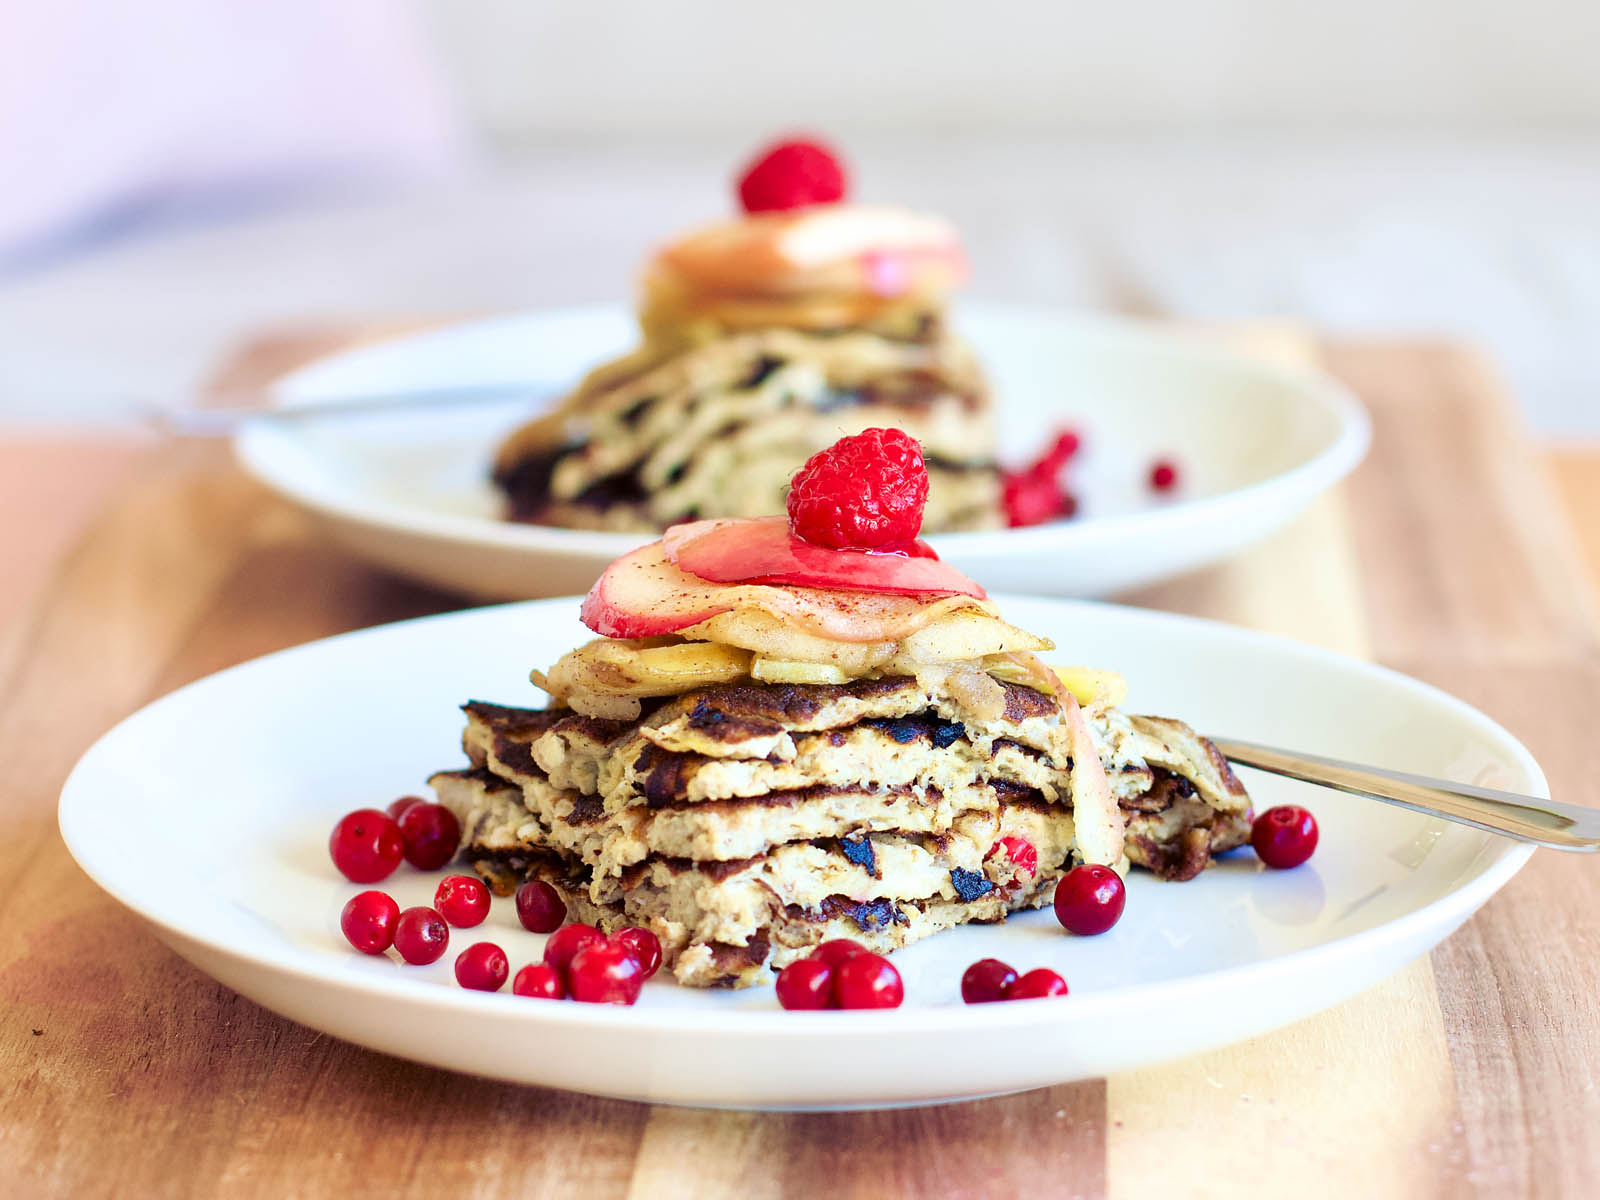 Paleo pancakes served with caramelized apple slices and berries.